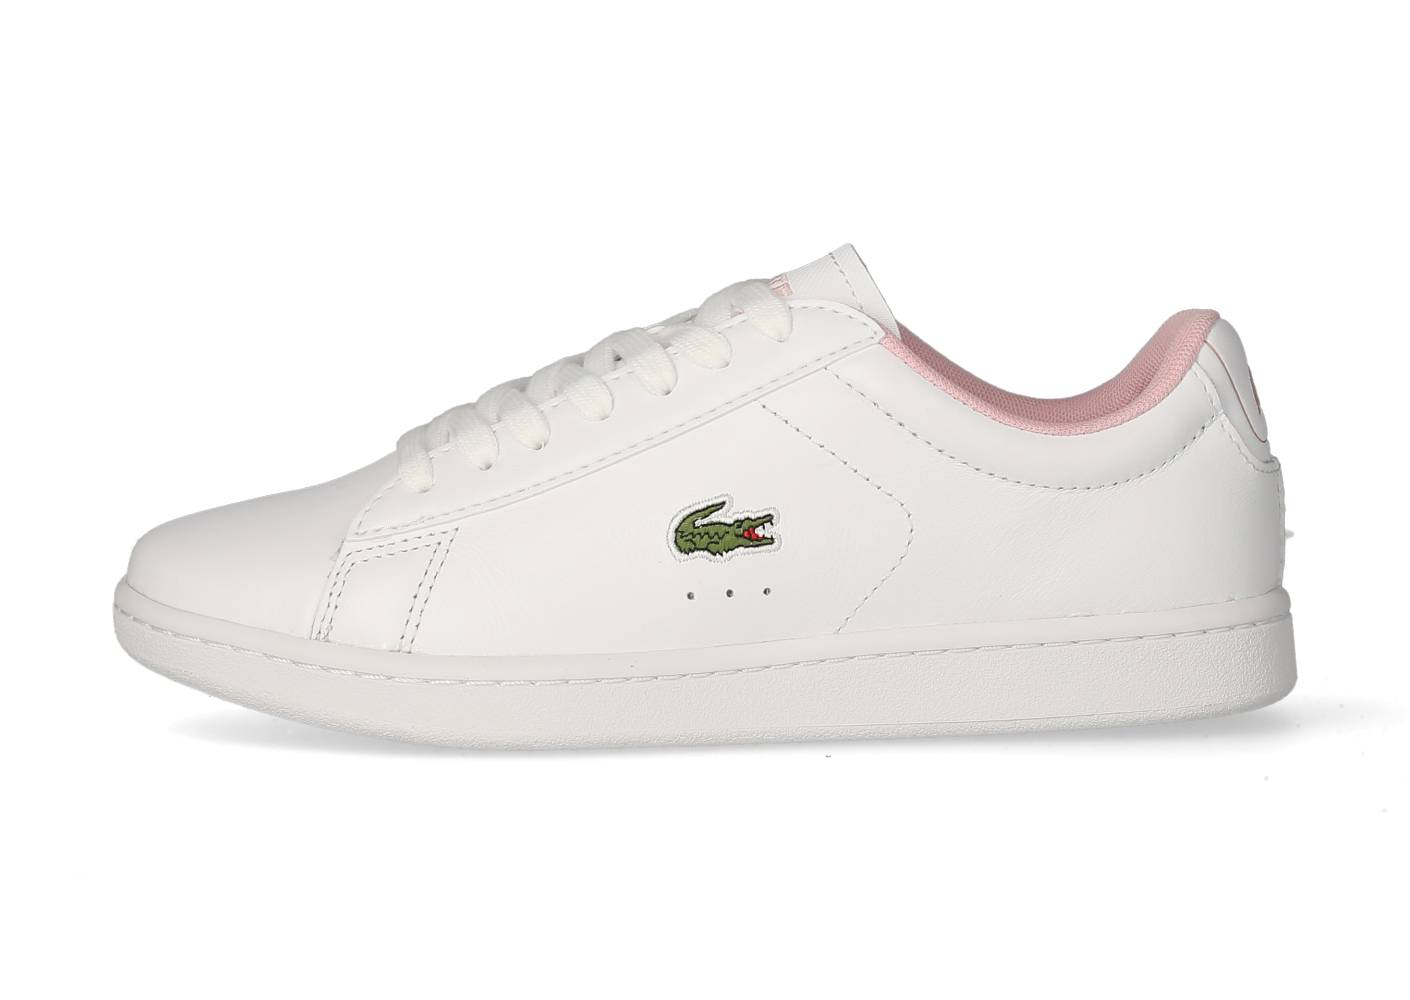 Lacoste Femme Carnaby Evo Blanche Et Rose Tennis